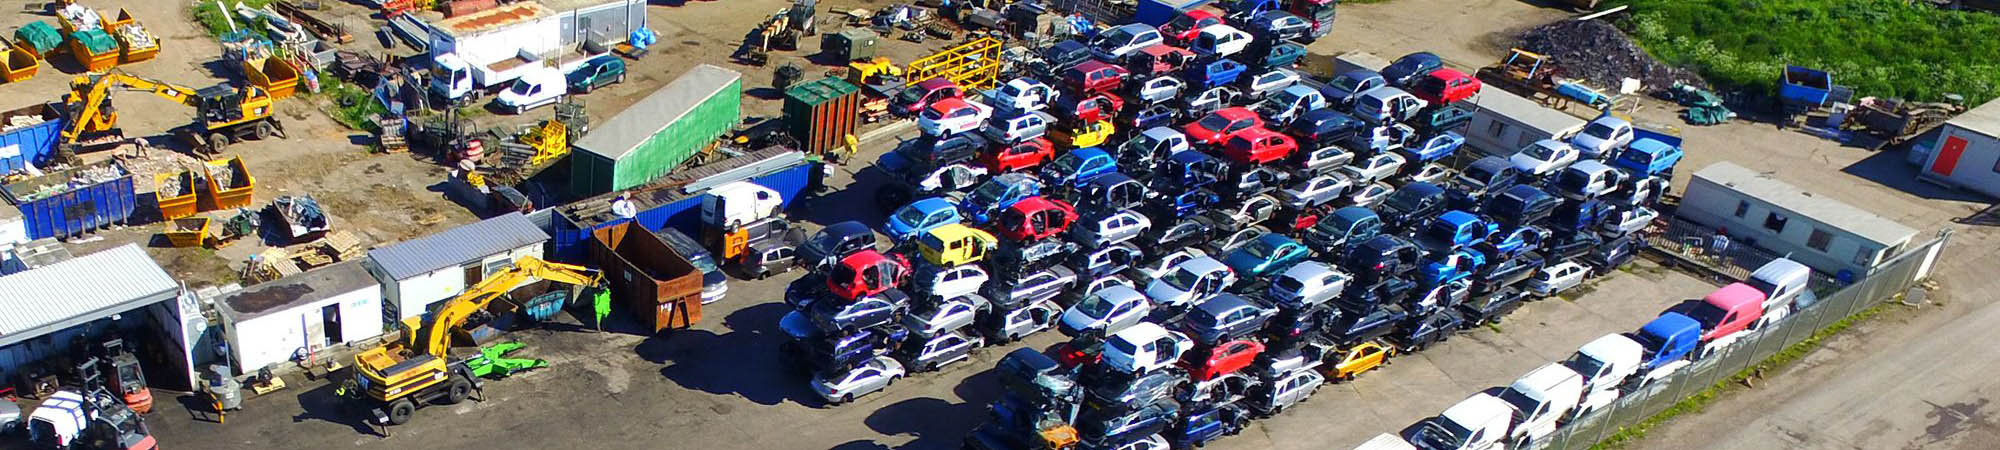 Scrap Cars Wanted - Top Prices Paid